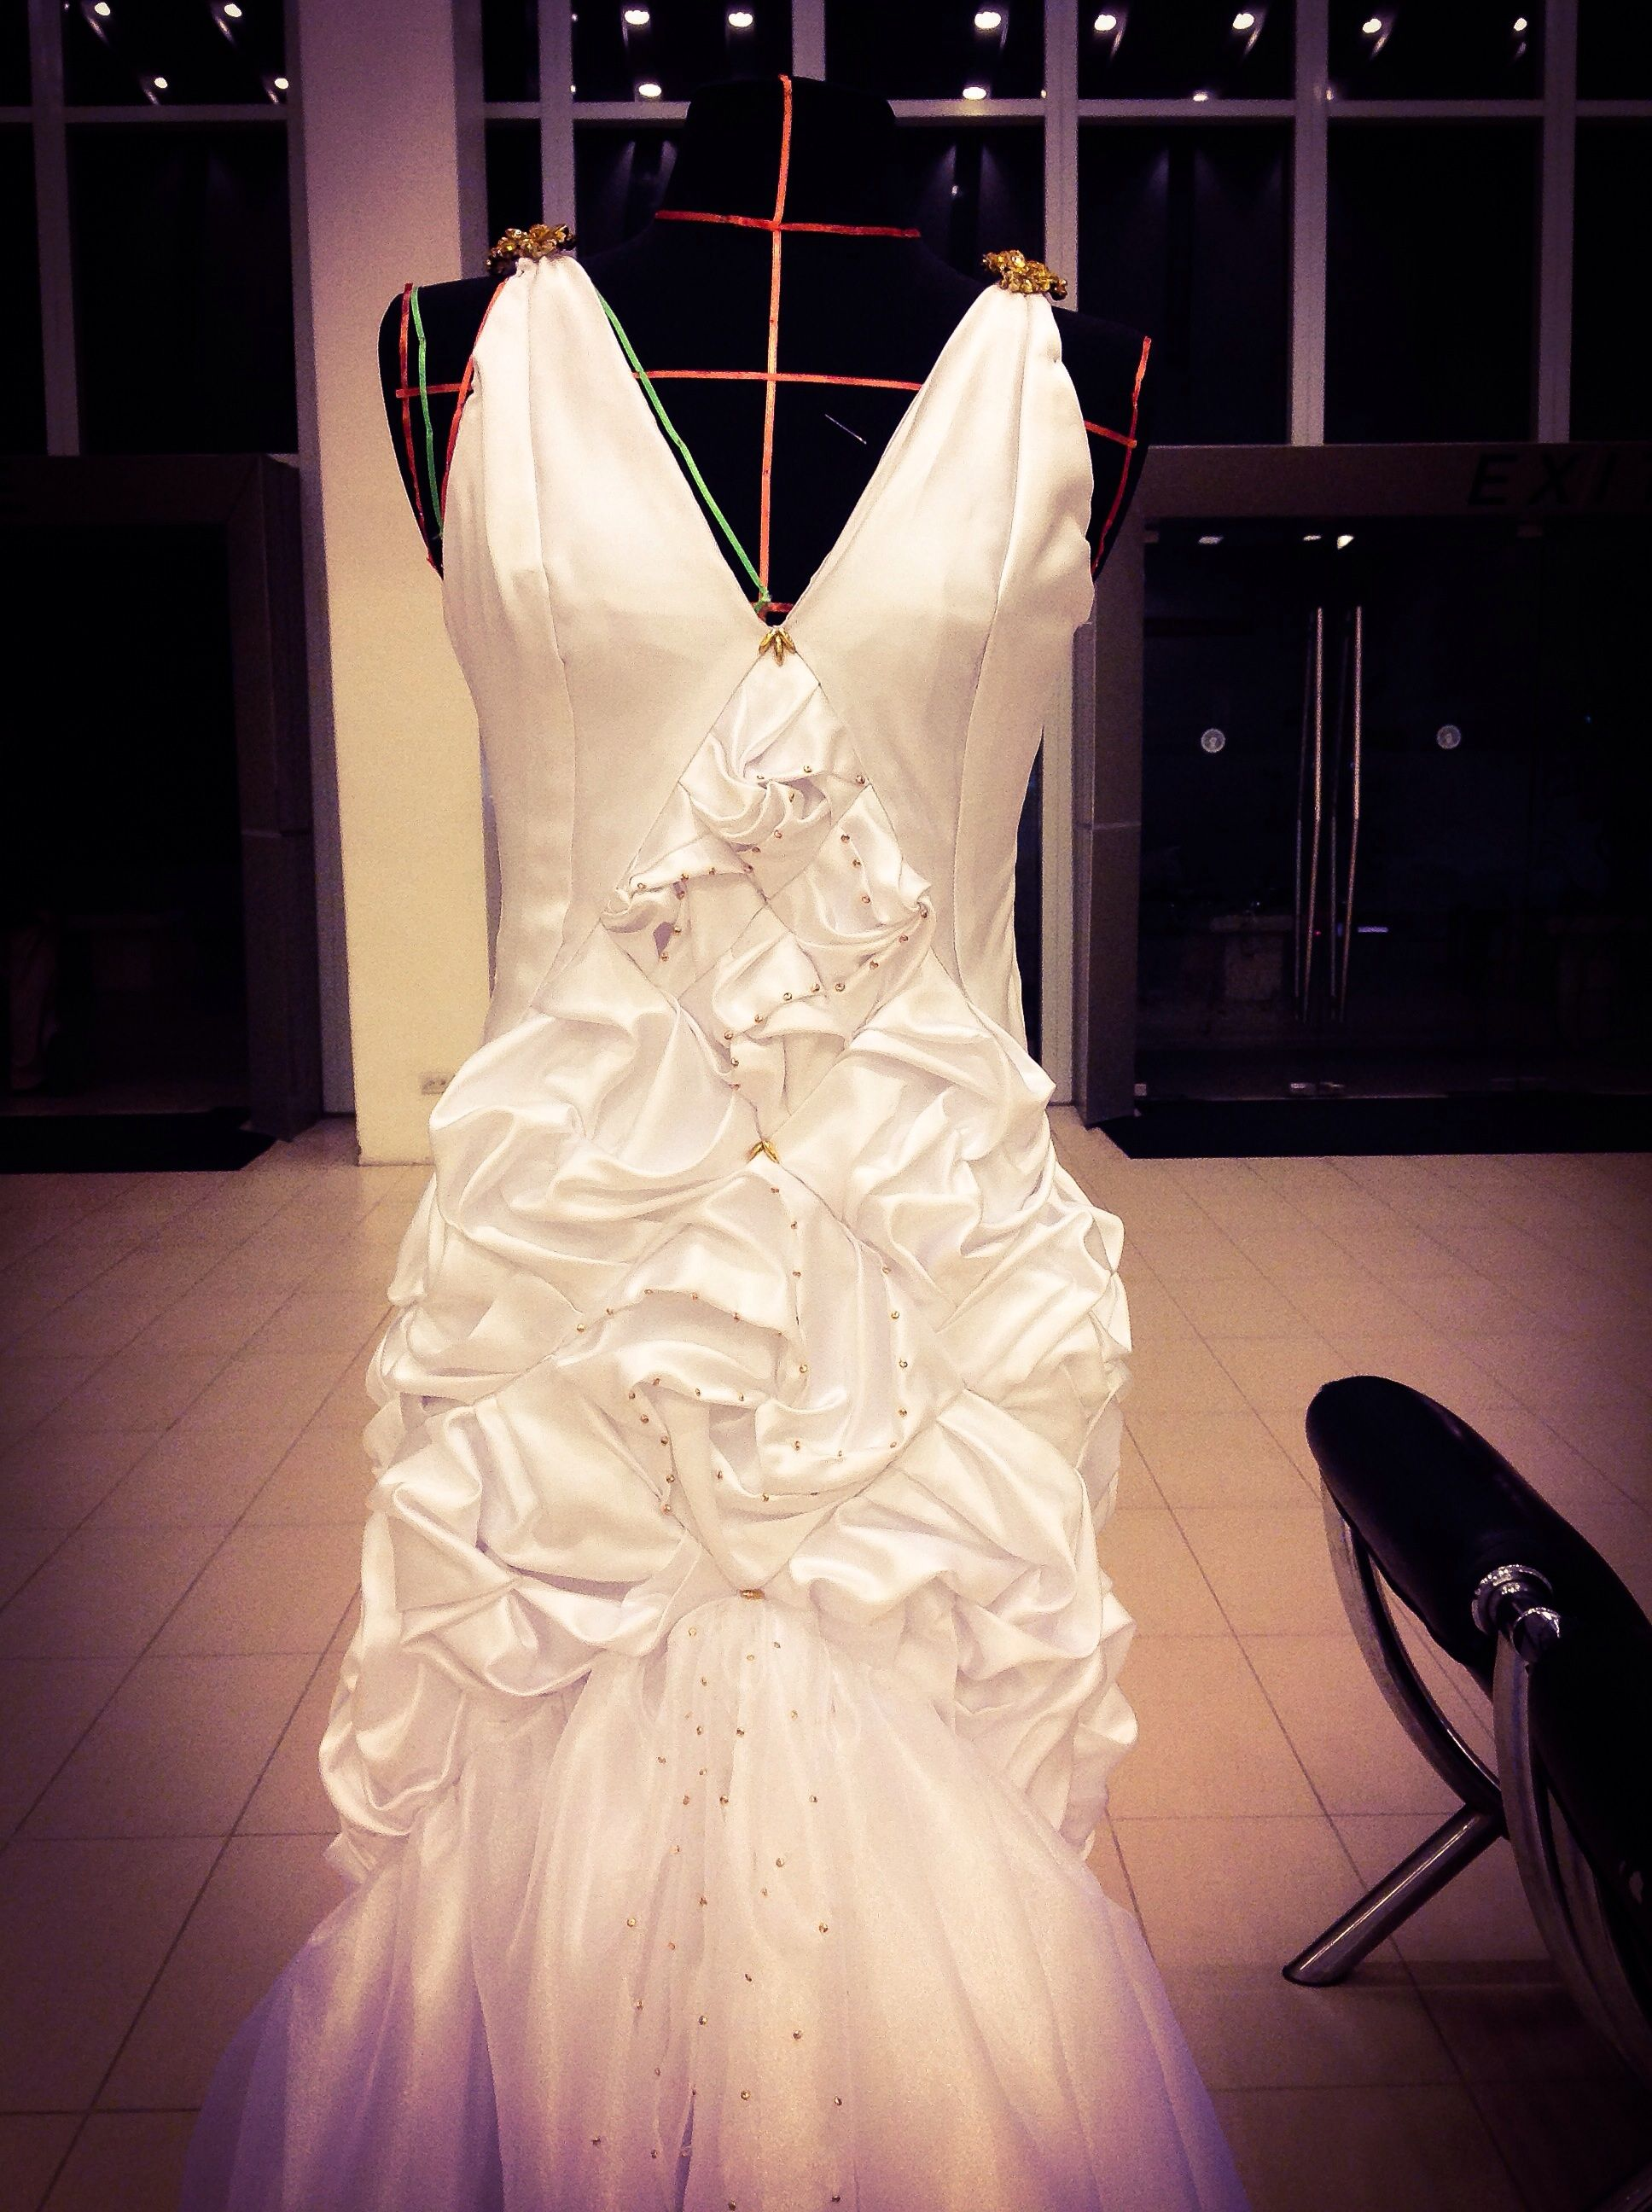 Gold white wedding dress  White gown with gold embellishment  Womenswear Designed by